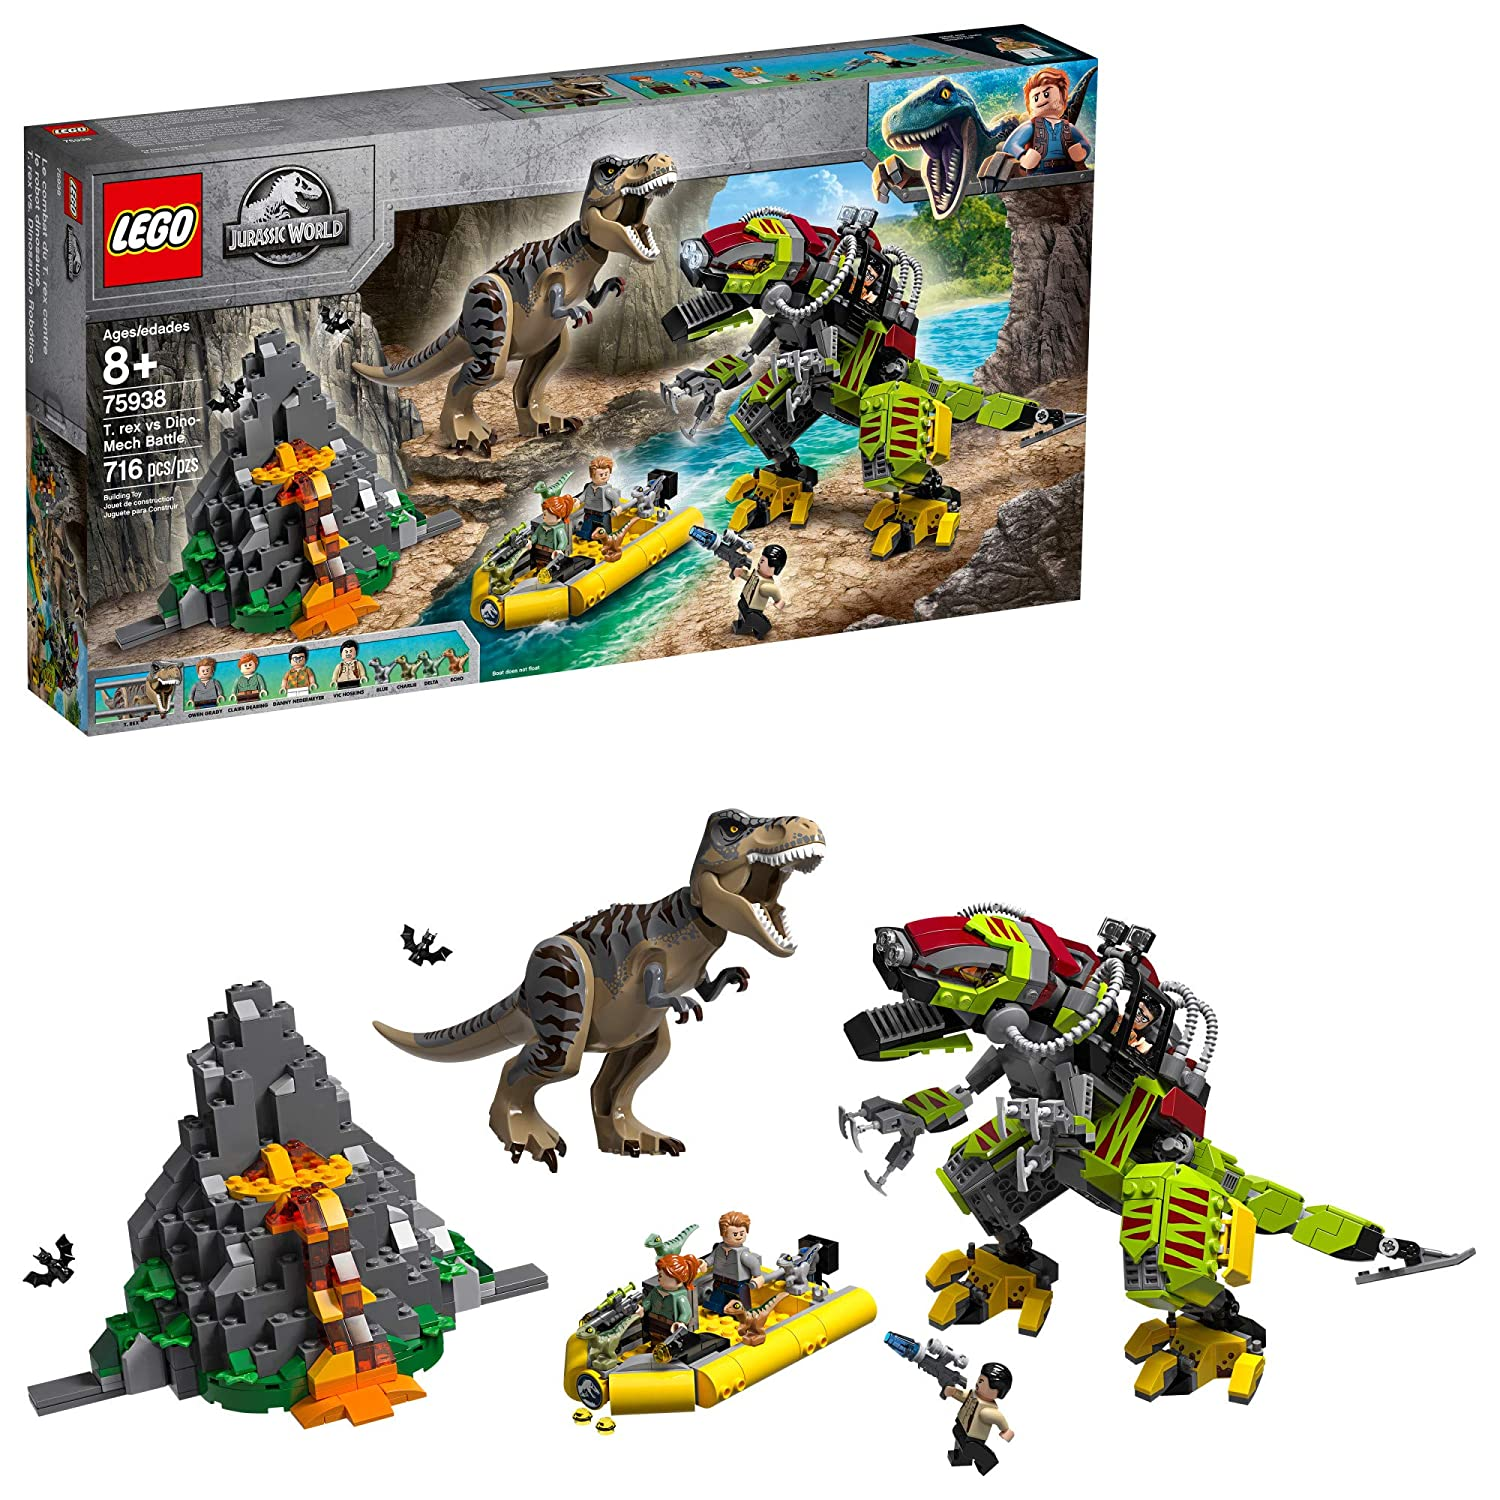 Top 8 Best Lego Dinosaurs Set Reviews in 2021 15